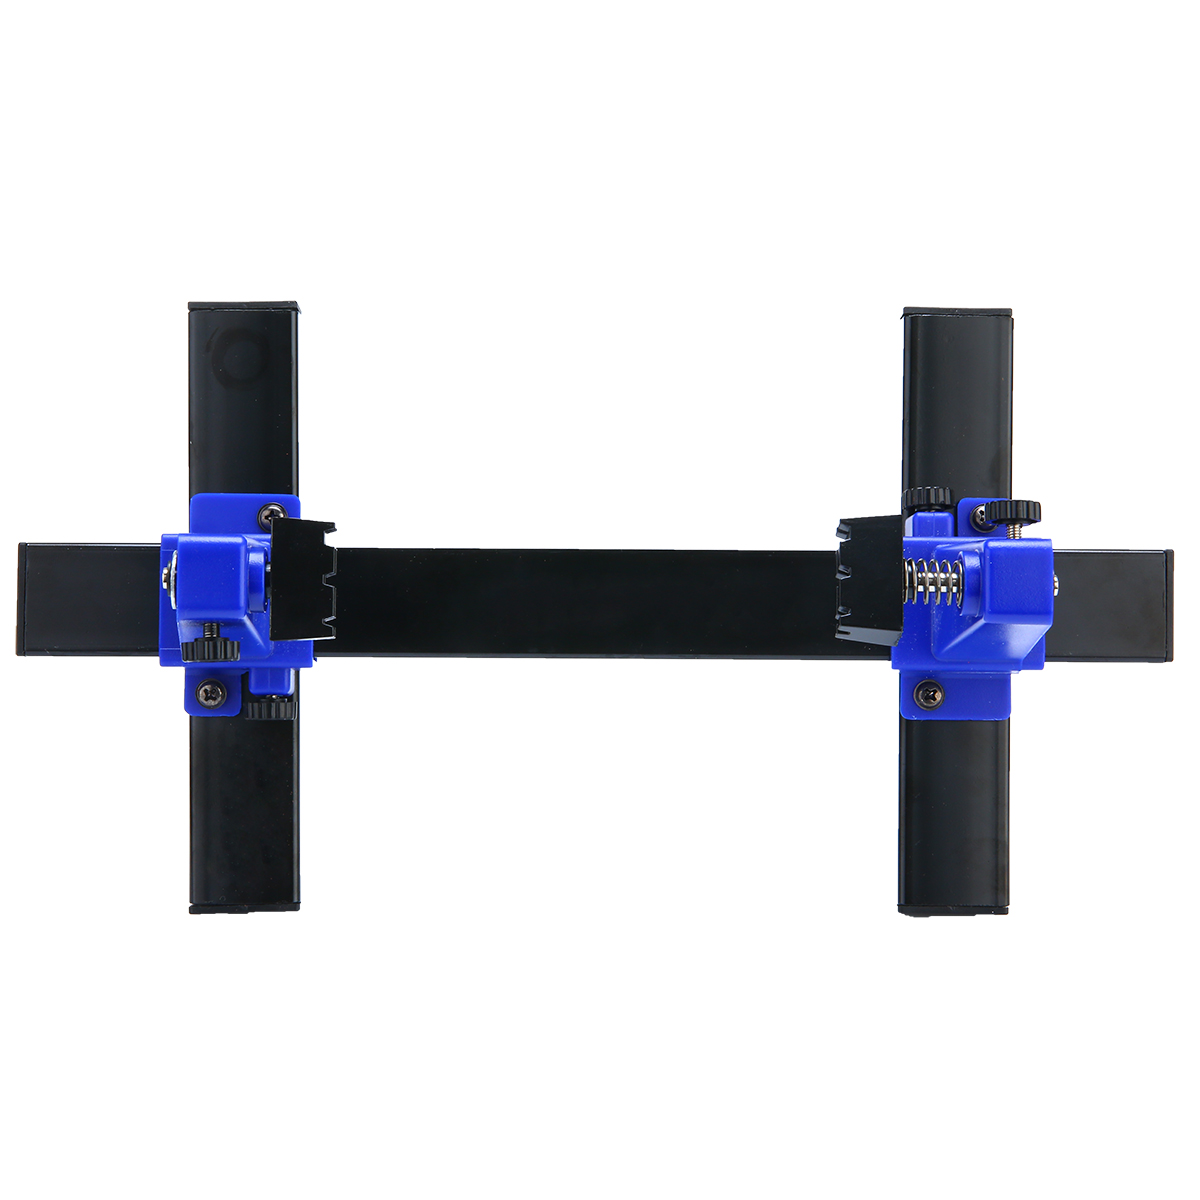 1Pc Adjustable PCB Holder Printed Circuit Board Soldering Assembly Clamp Tool For PCB Soldering And Desoldering Rework